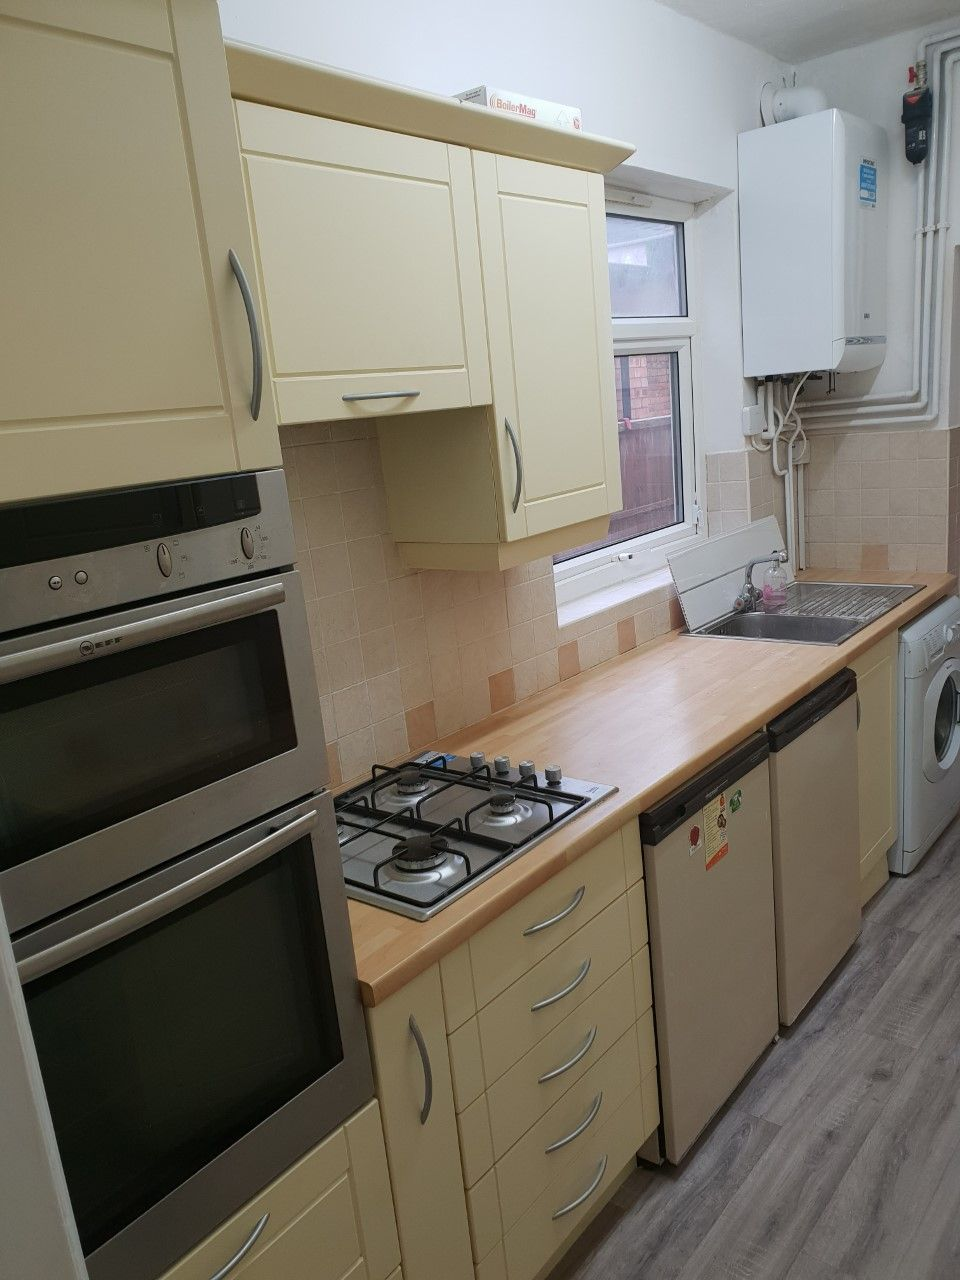 3 bedroom mid terraced house To Let in Leicester - Photograph 4.